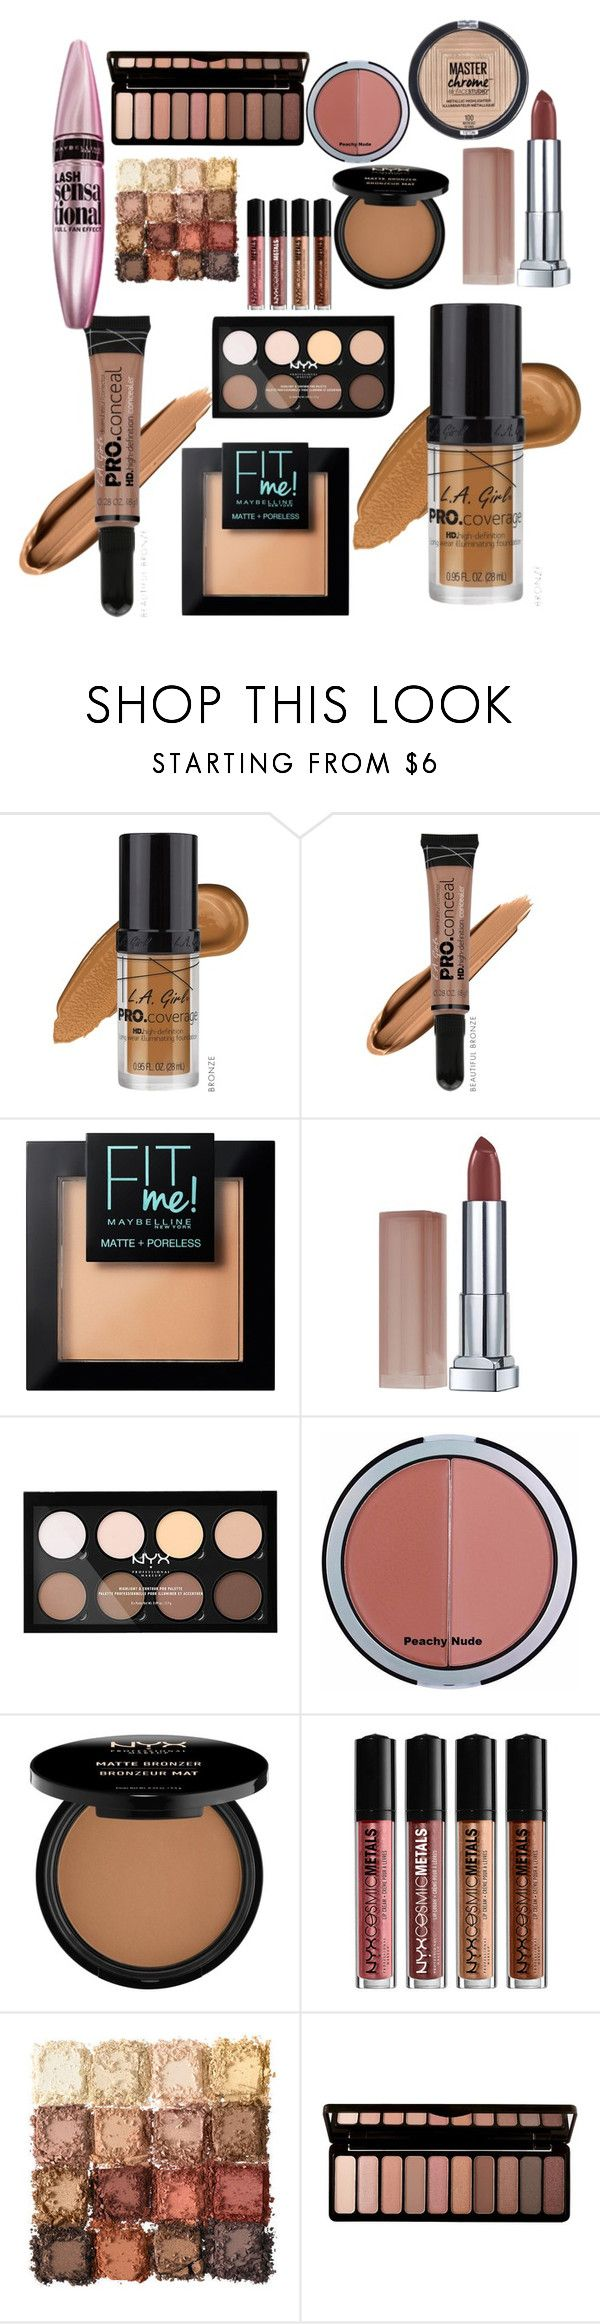 64 Best Promo Images By Rose Gold Pearls Makeup Products Lock It Cushion Lip Pen 10 Nudi Beige Drugstore Neutral Rosegoldpearls Featuring Beauty From La Girl Maybelline Elf